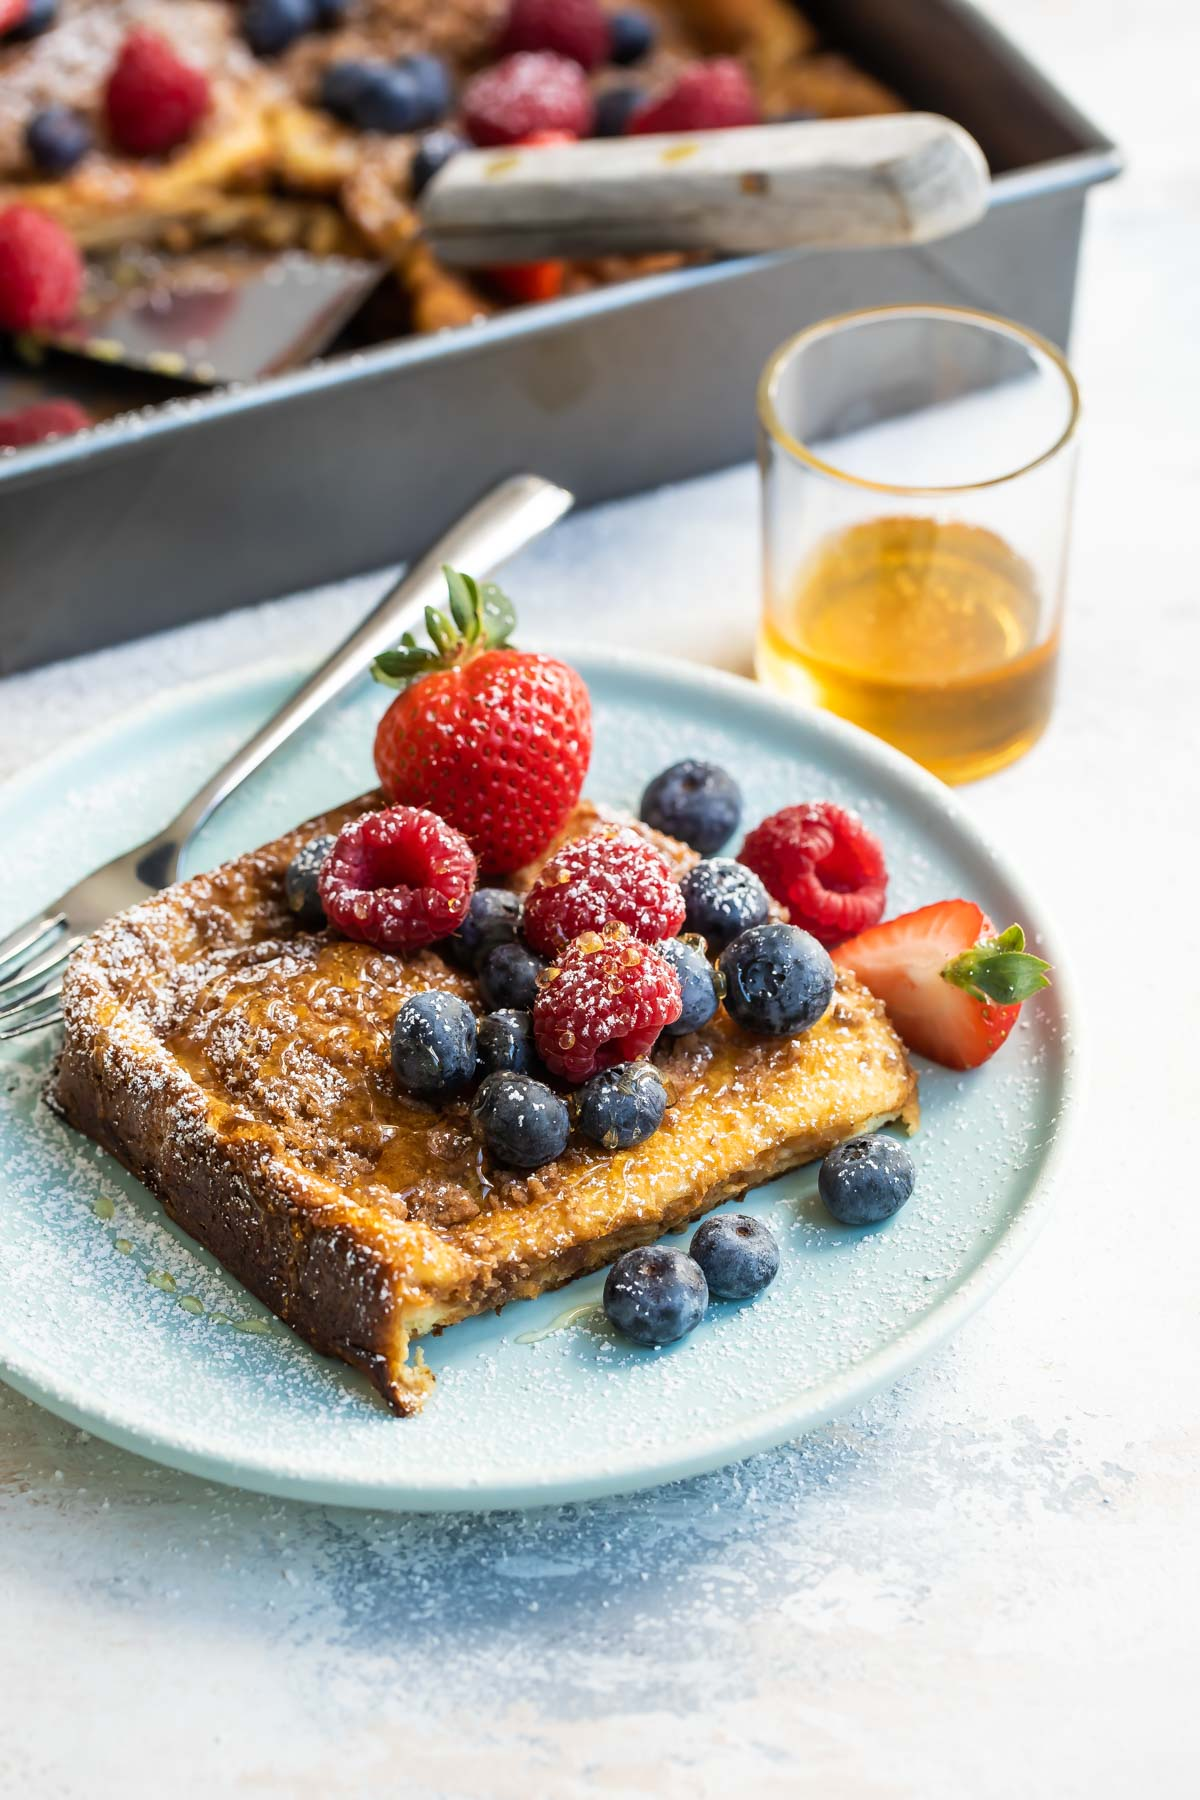 Baked french toast on a plate covered with berries.